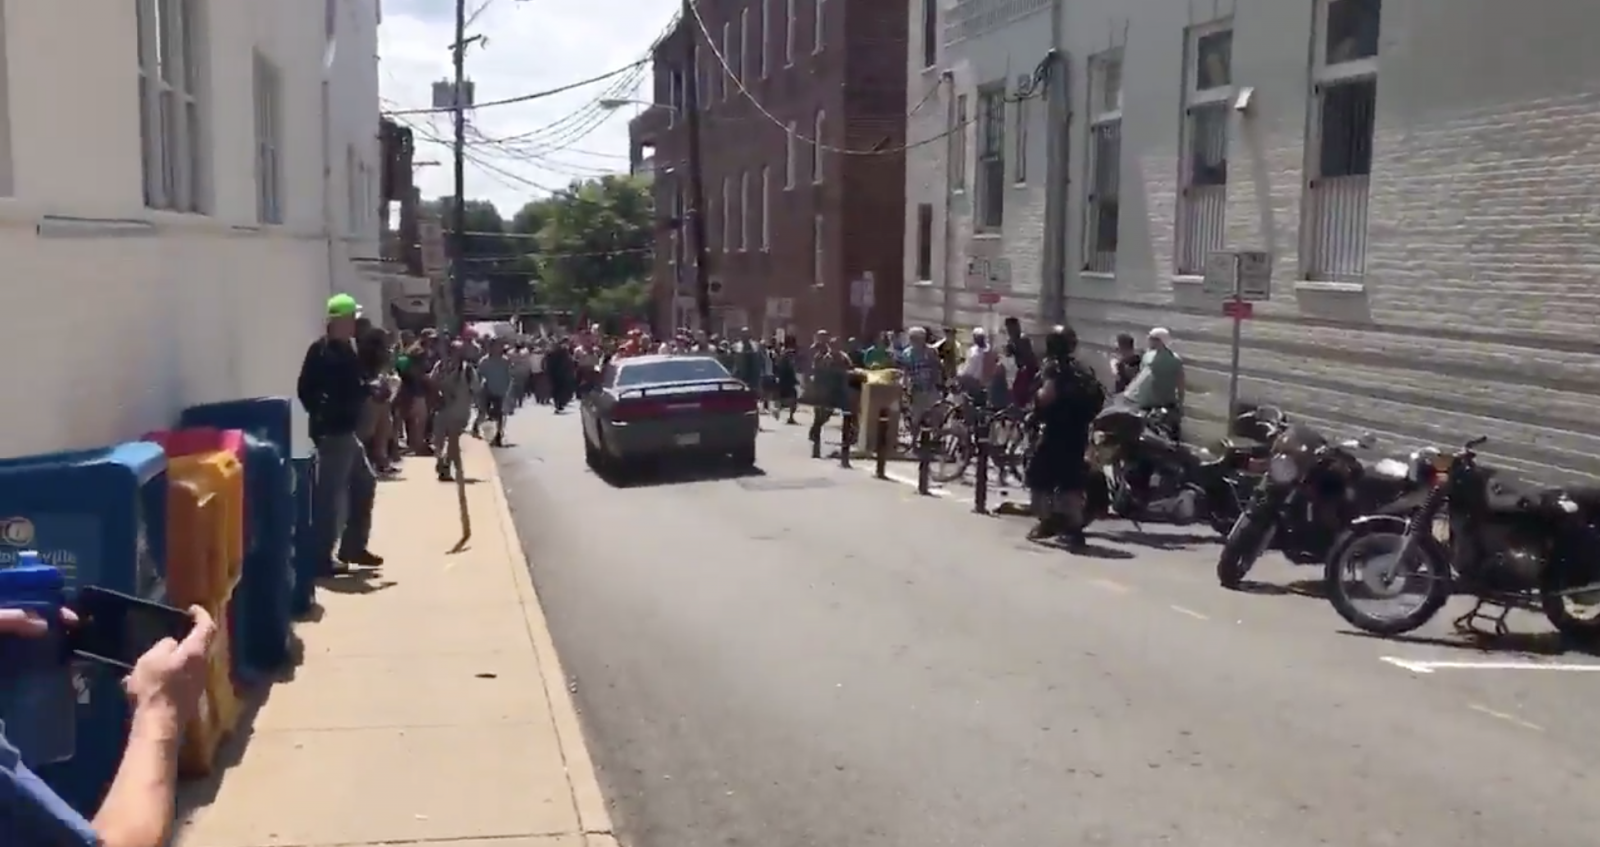 car-plows-into-protesters-in-charlottesville-va-after-white-supremacy-rally-violence